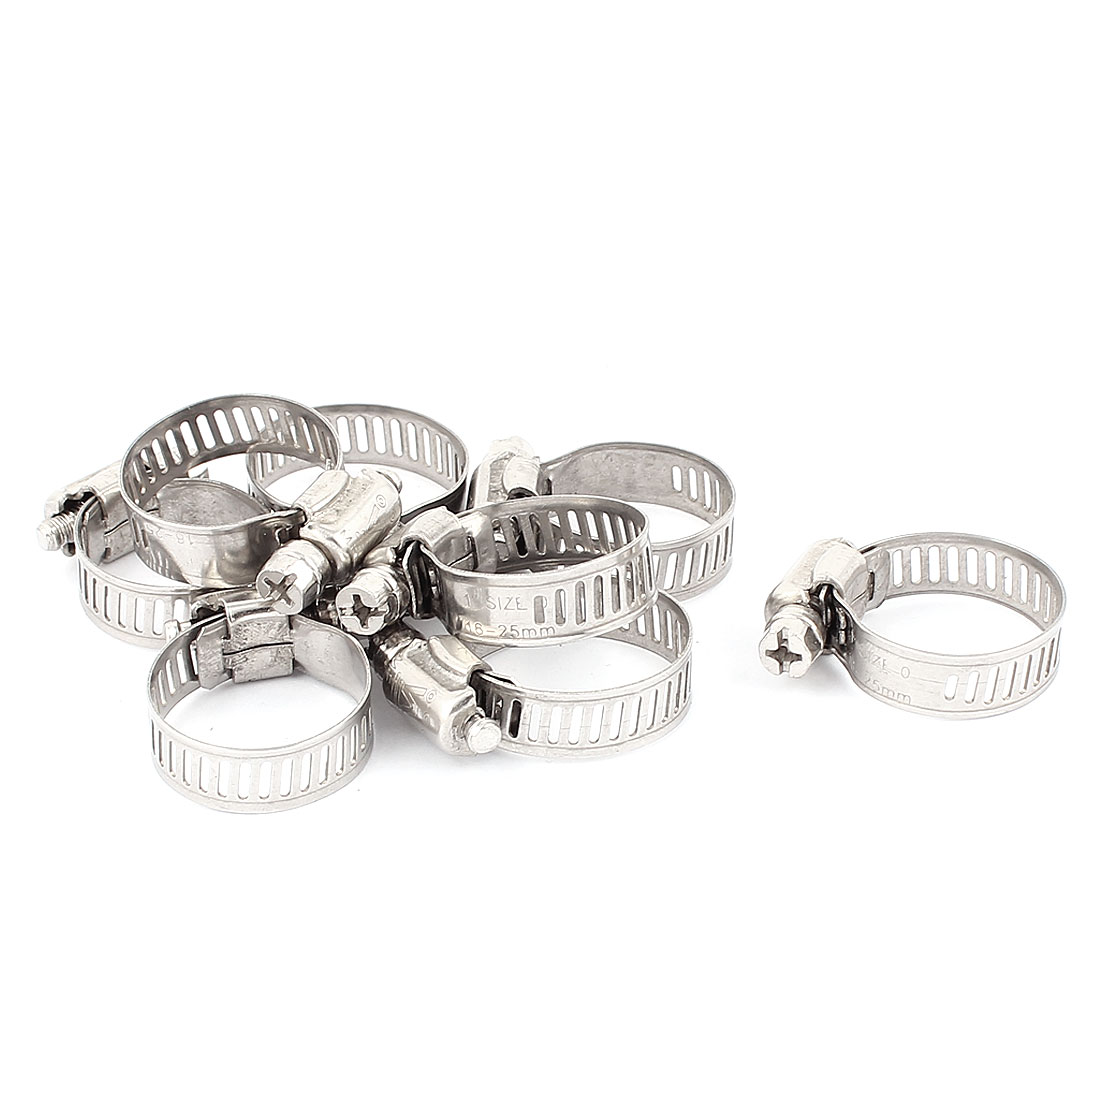 8pcs Stainless Steel 16-25mm Air Water Fuel Hose Clamps Pipe Clips